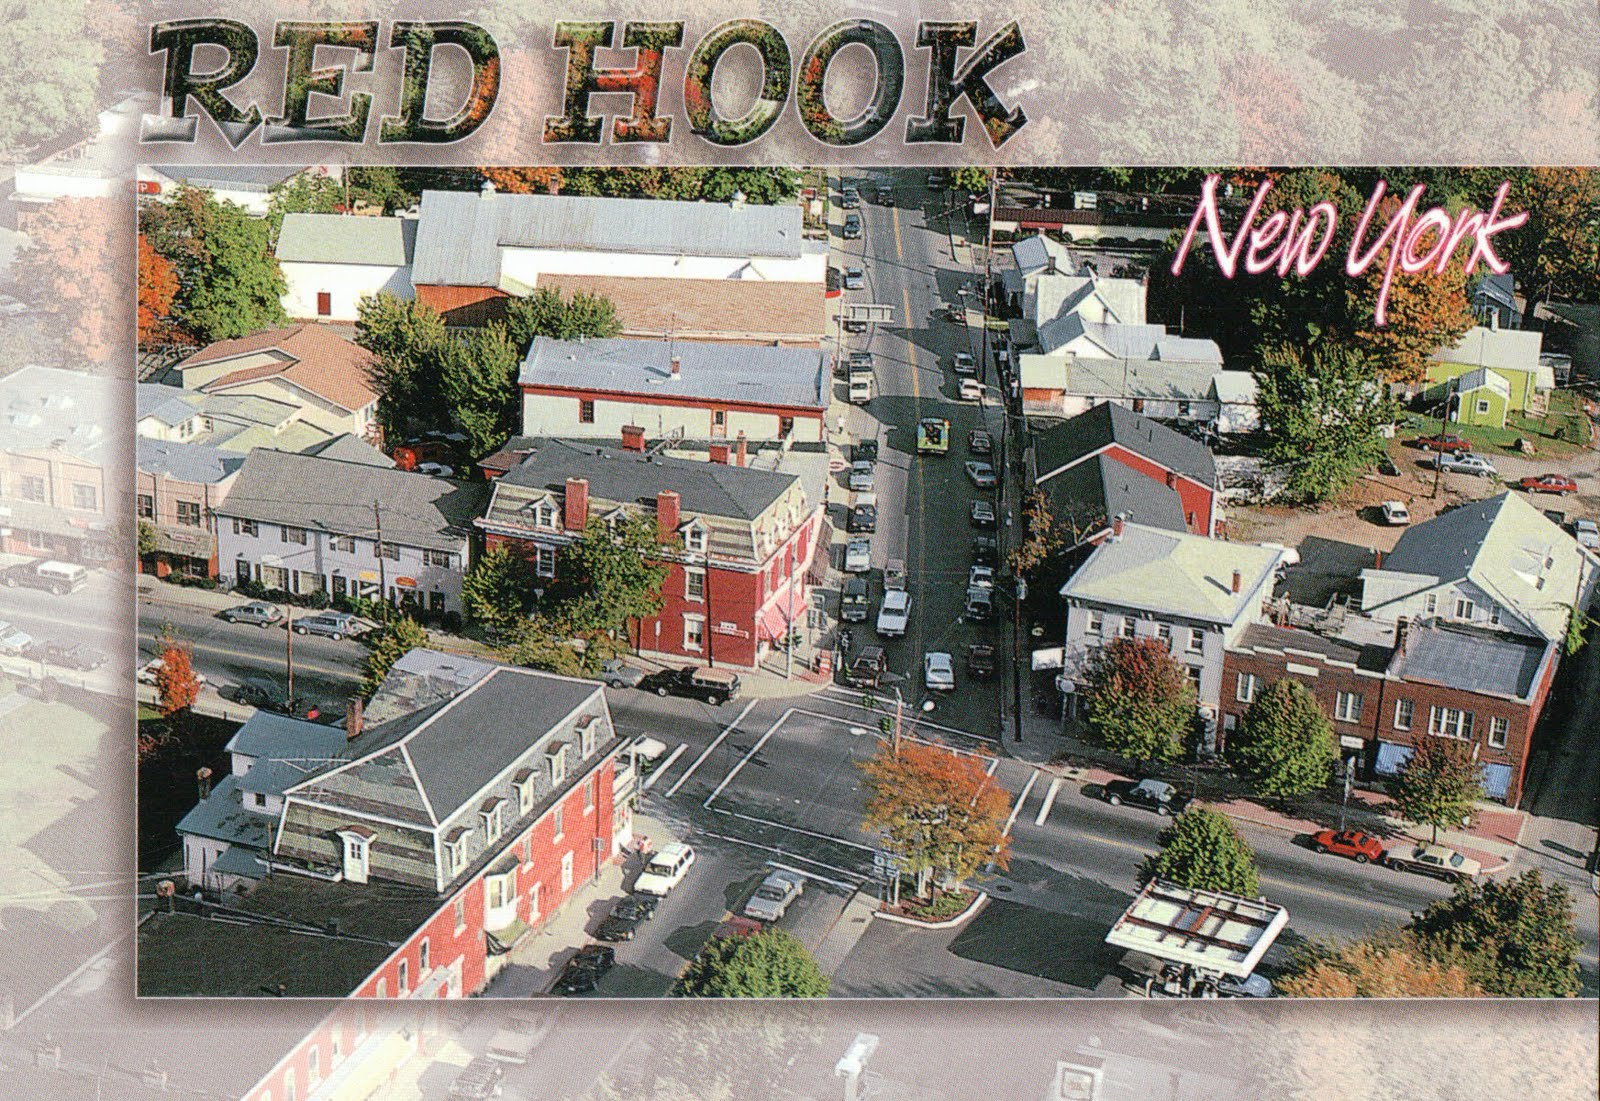 Riverside Park New York City, A Tale of Two Red Hooks | Postally Yours